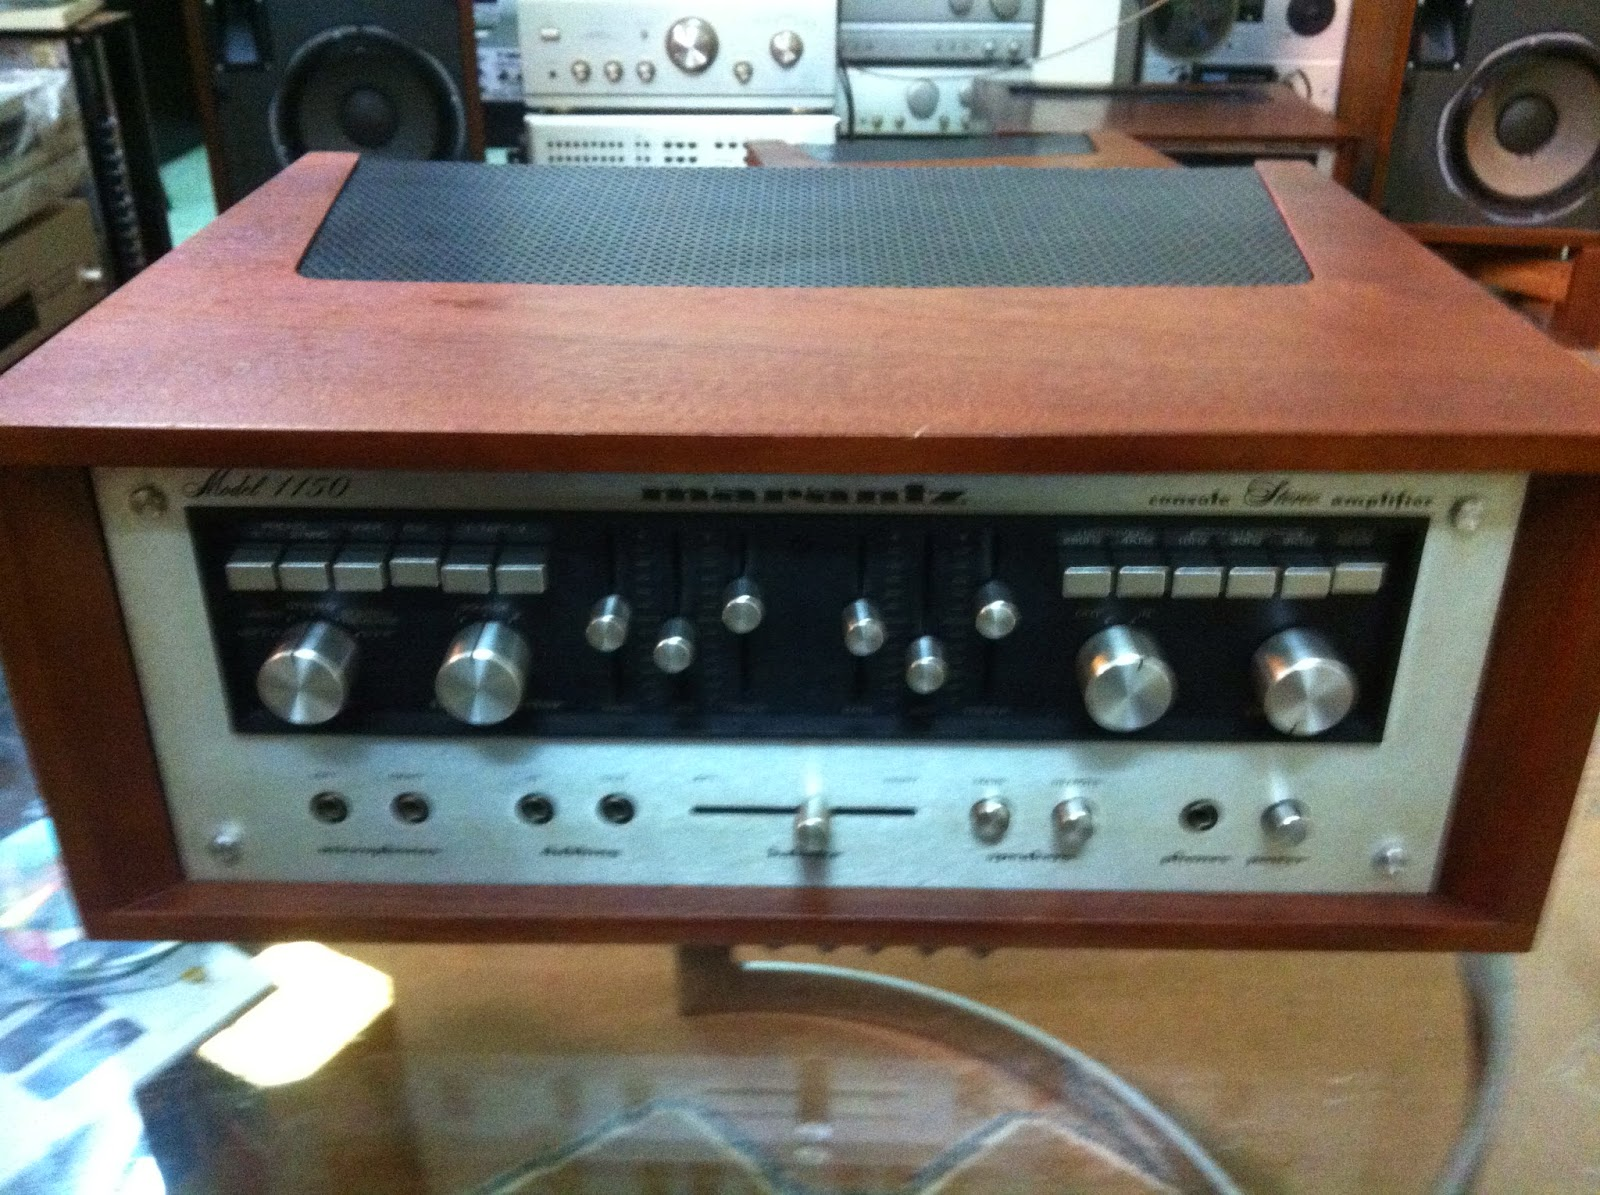 Amply Marantz 1150 - Made in Japan